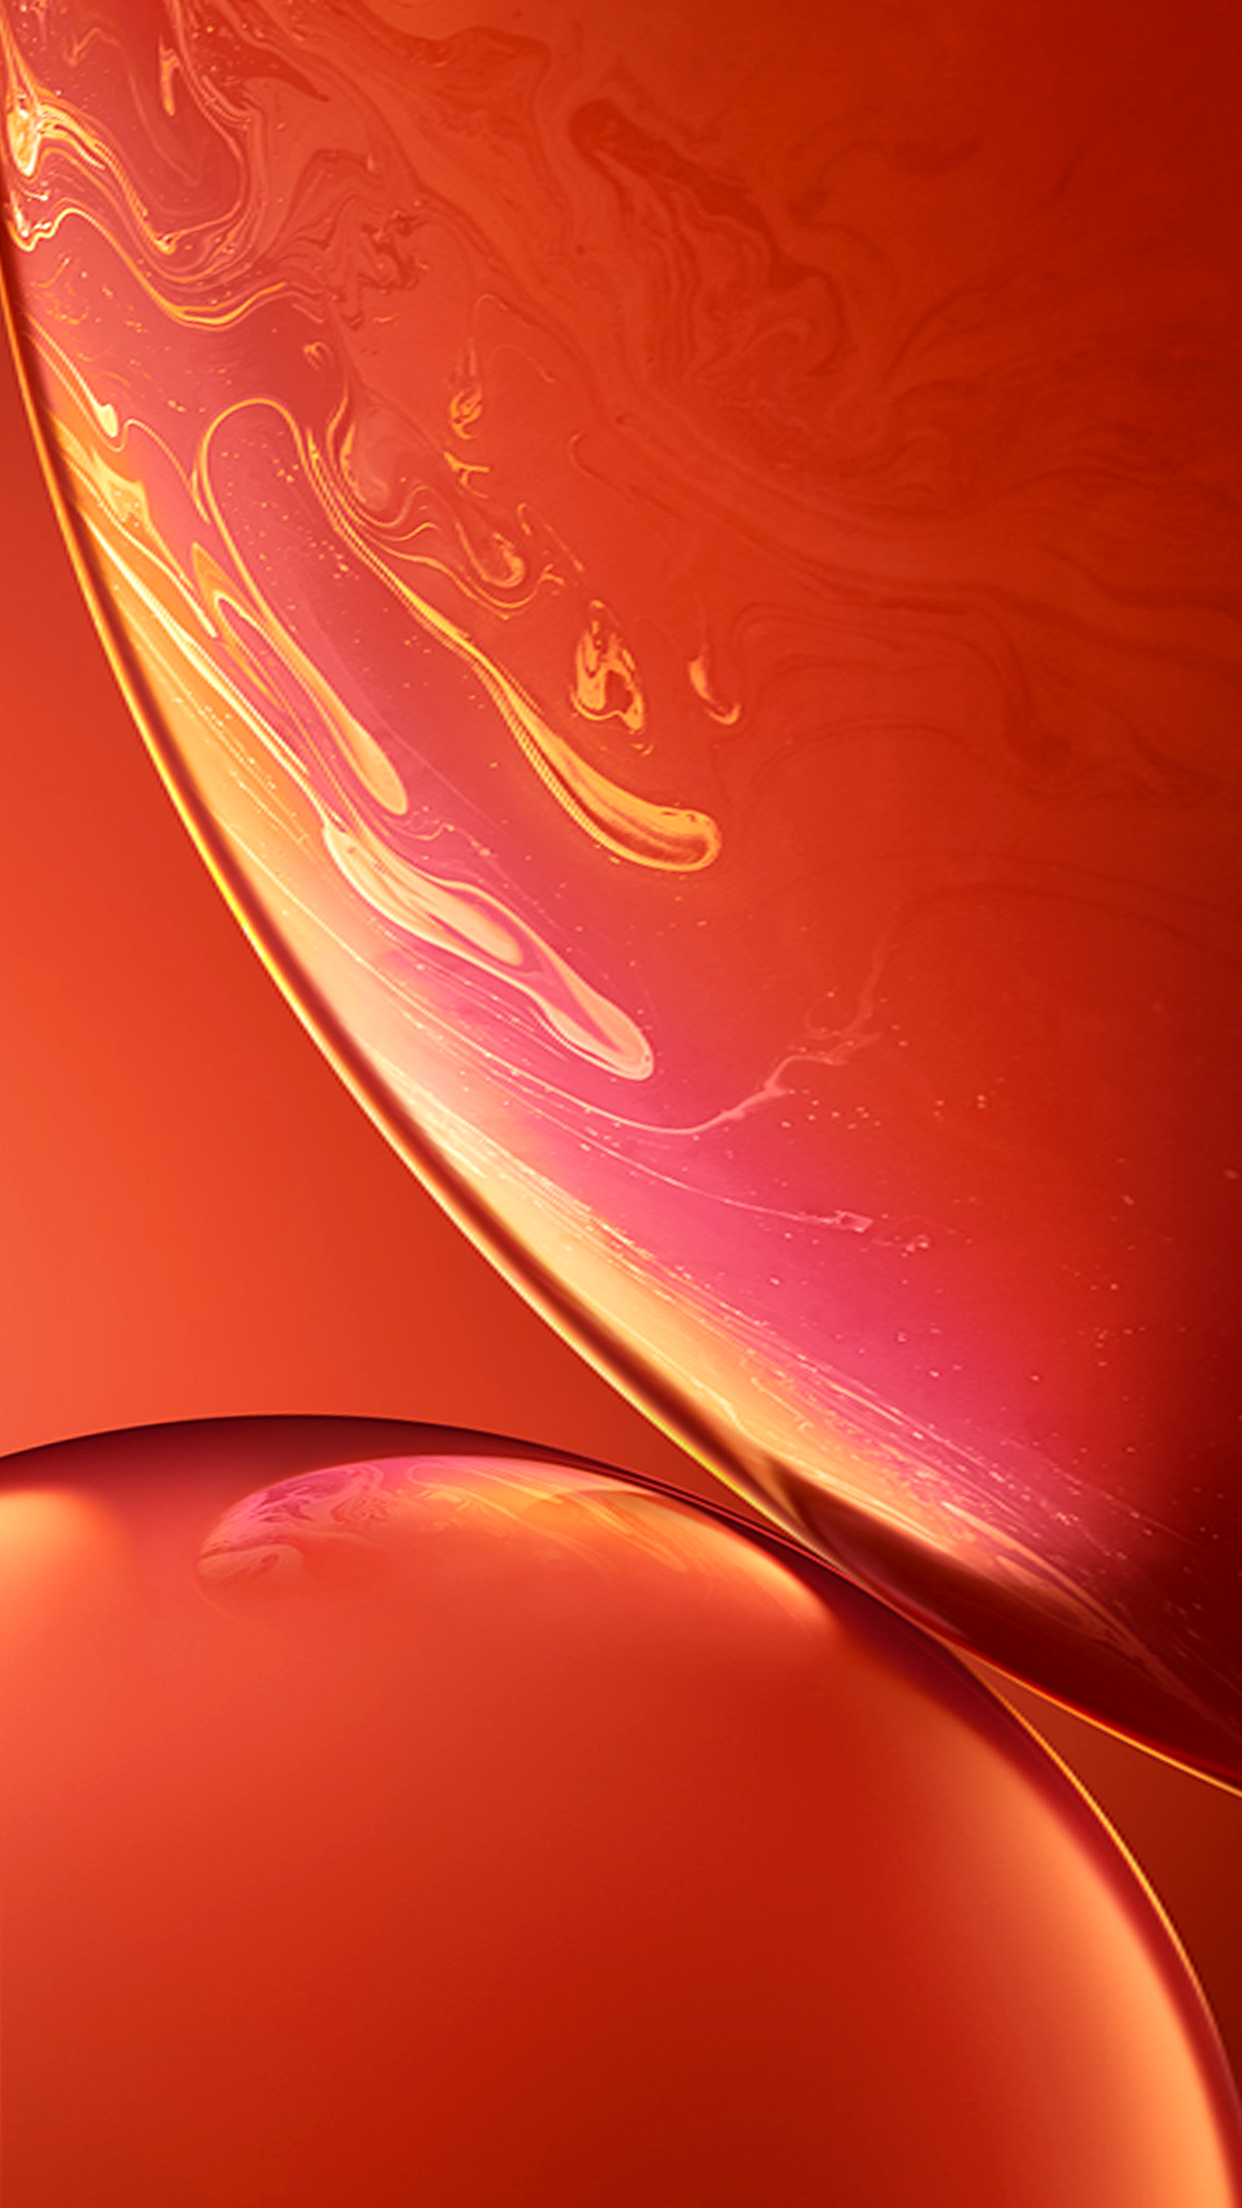 Iphone Xr Wallpaper 4K Gallery Check more at https